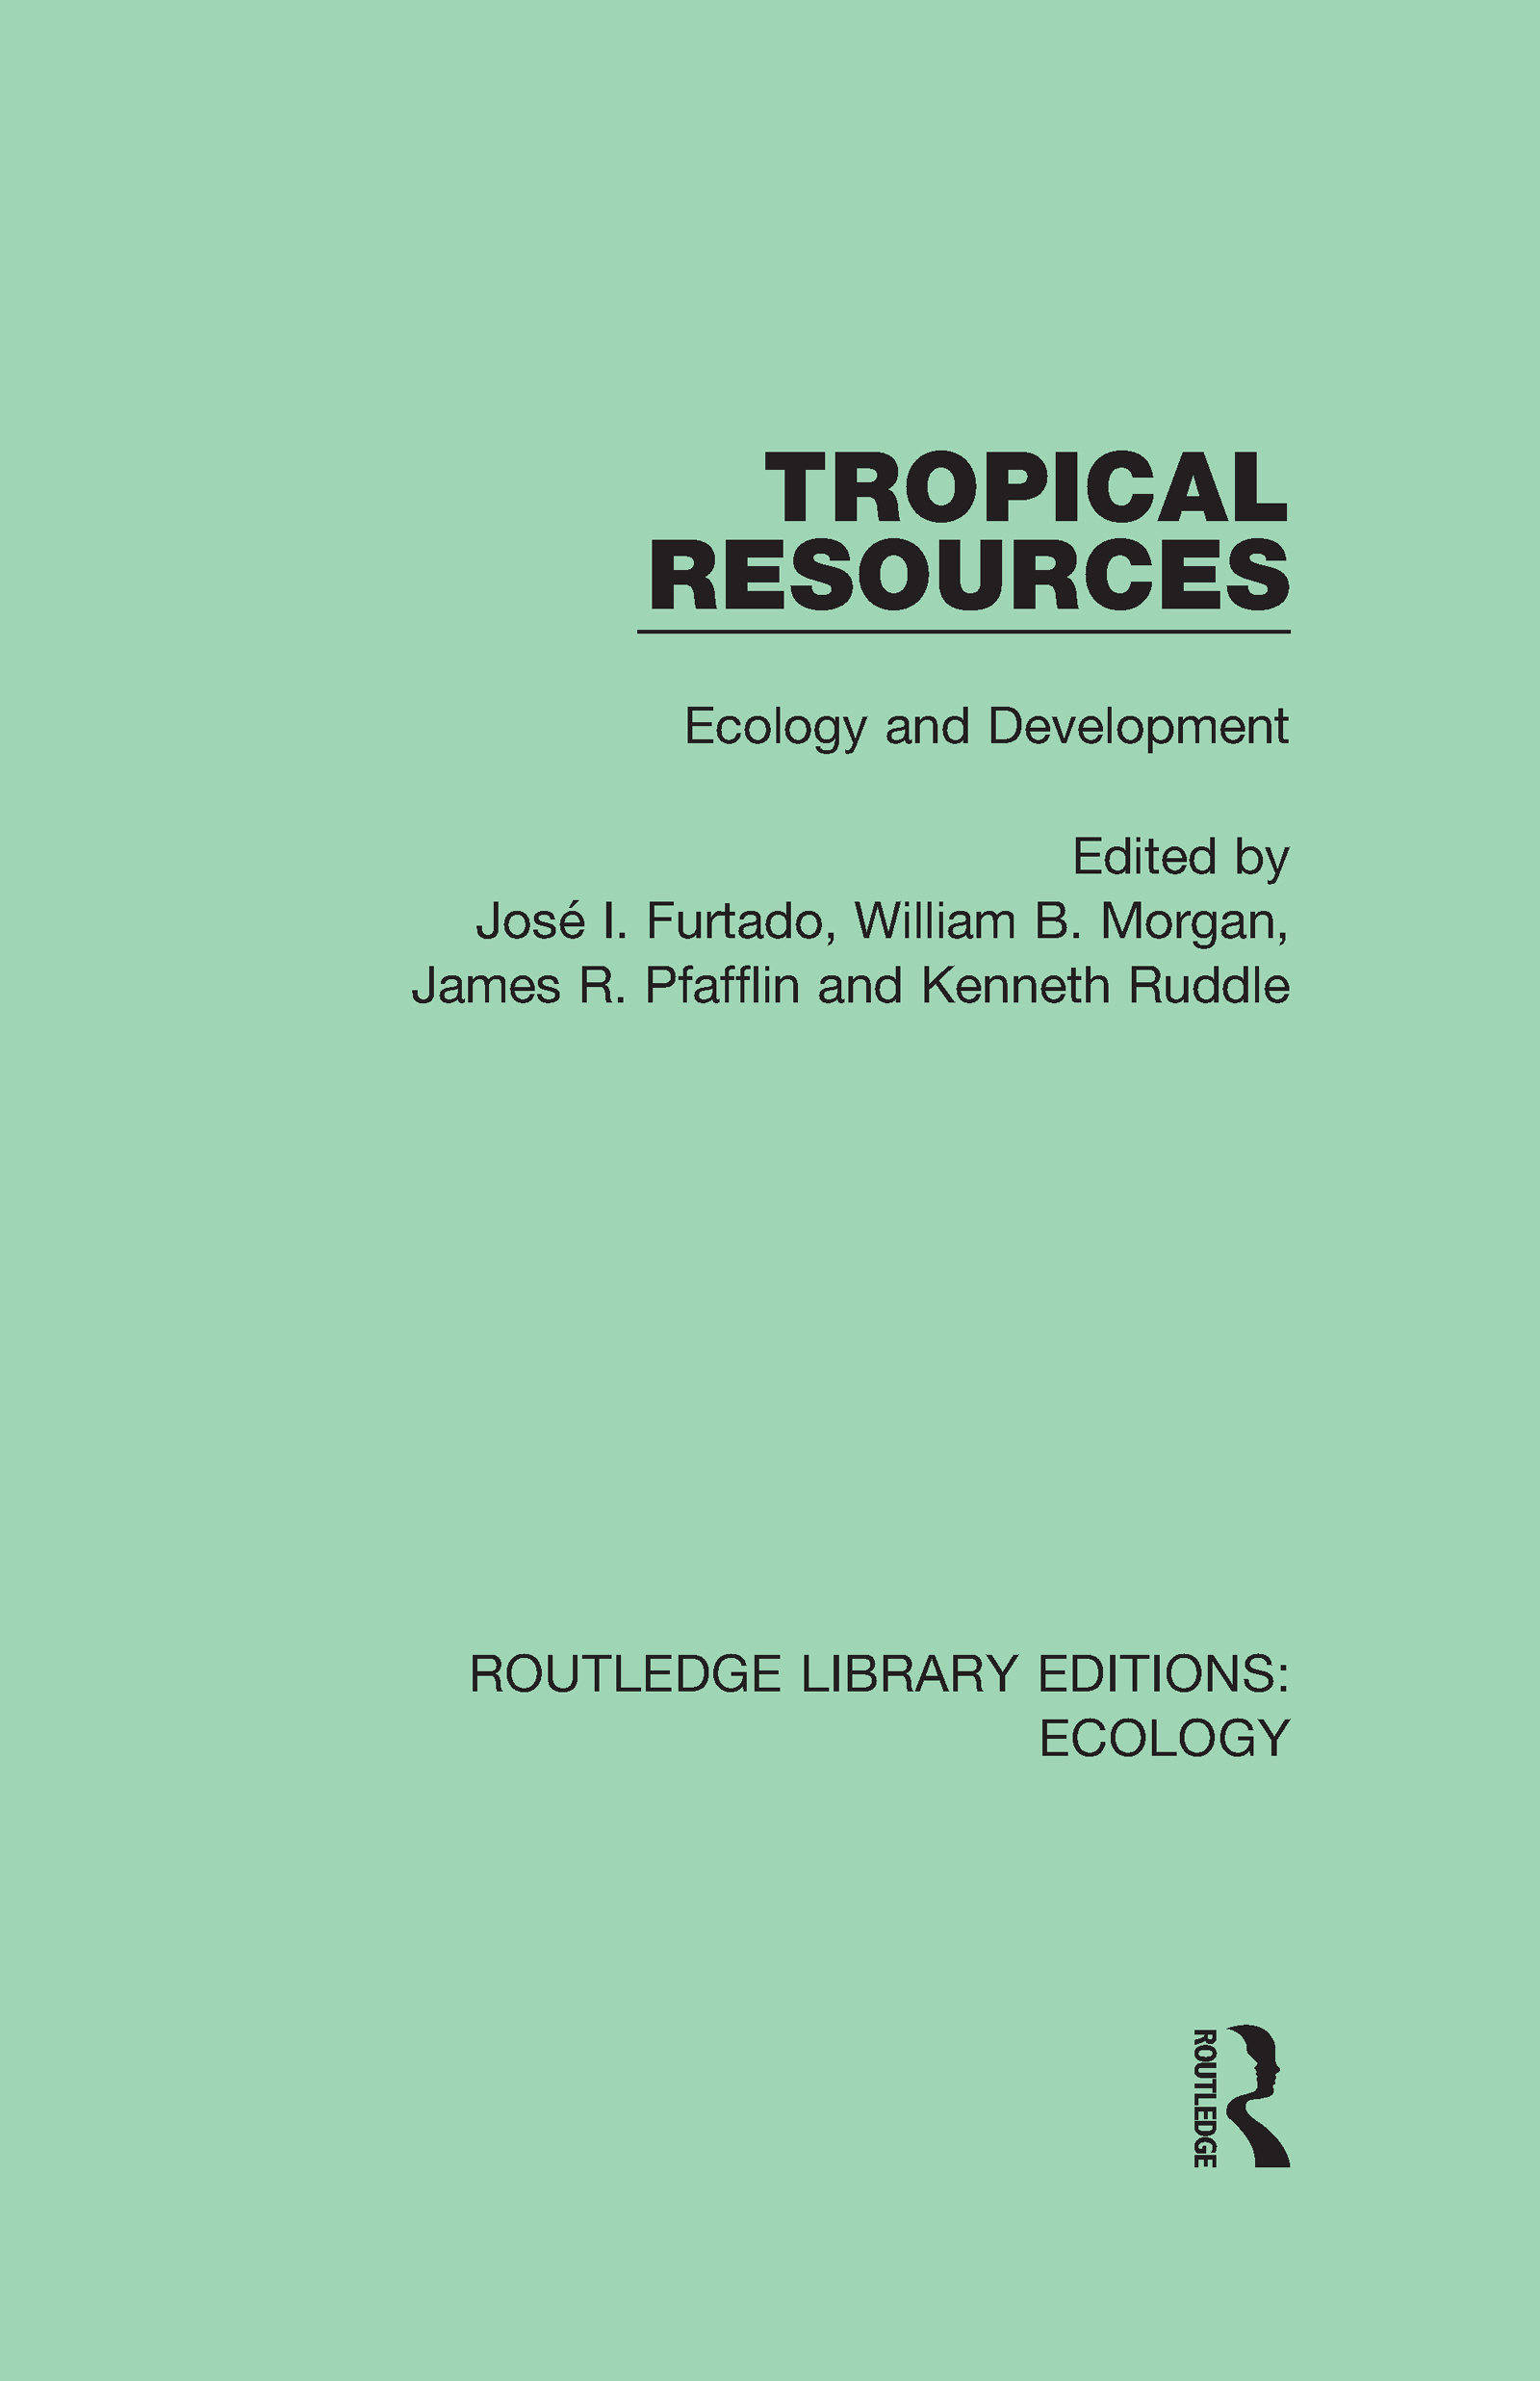 Tropical Resources